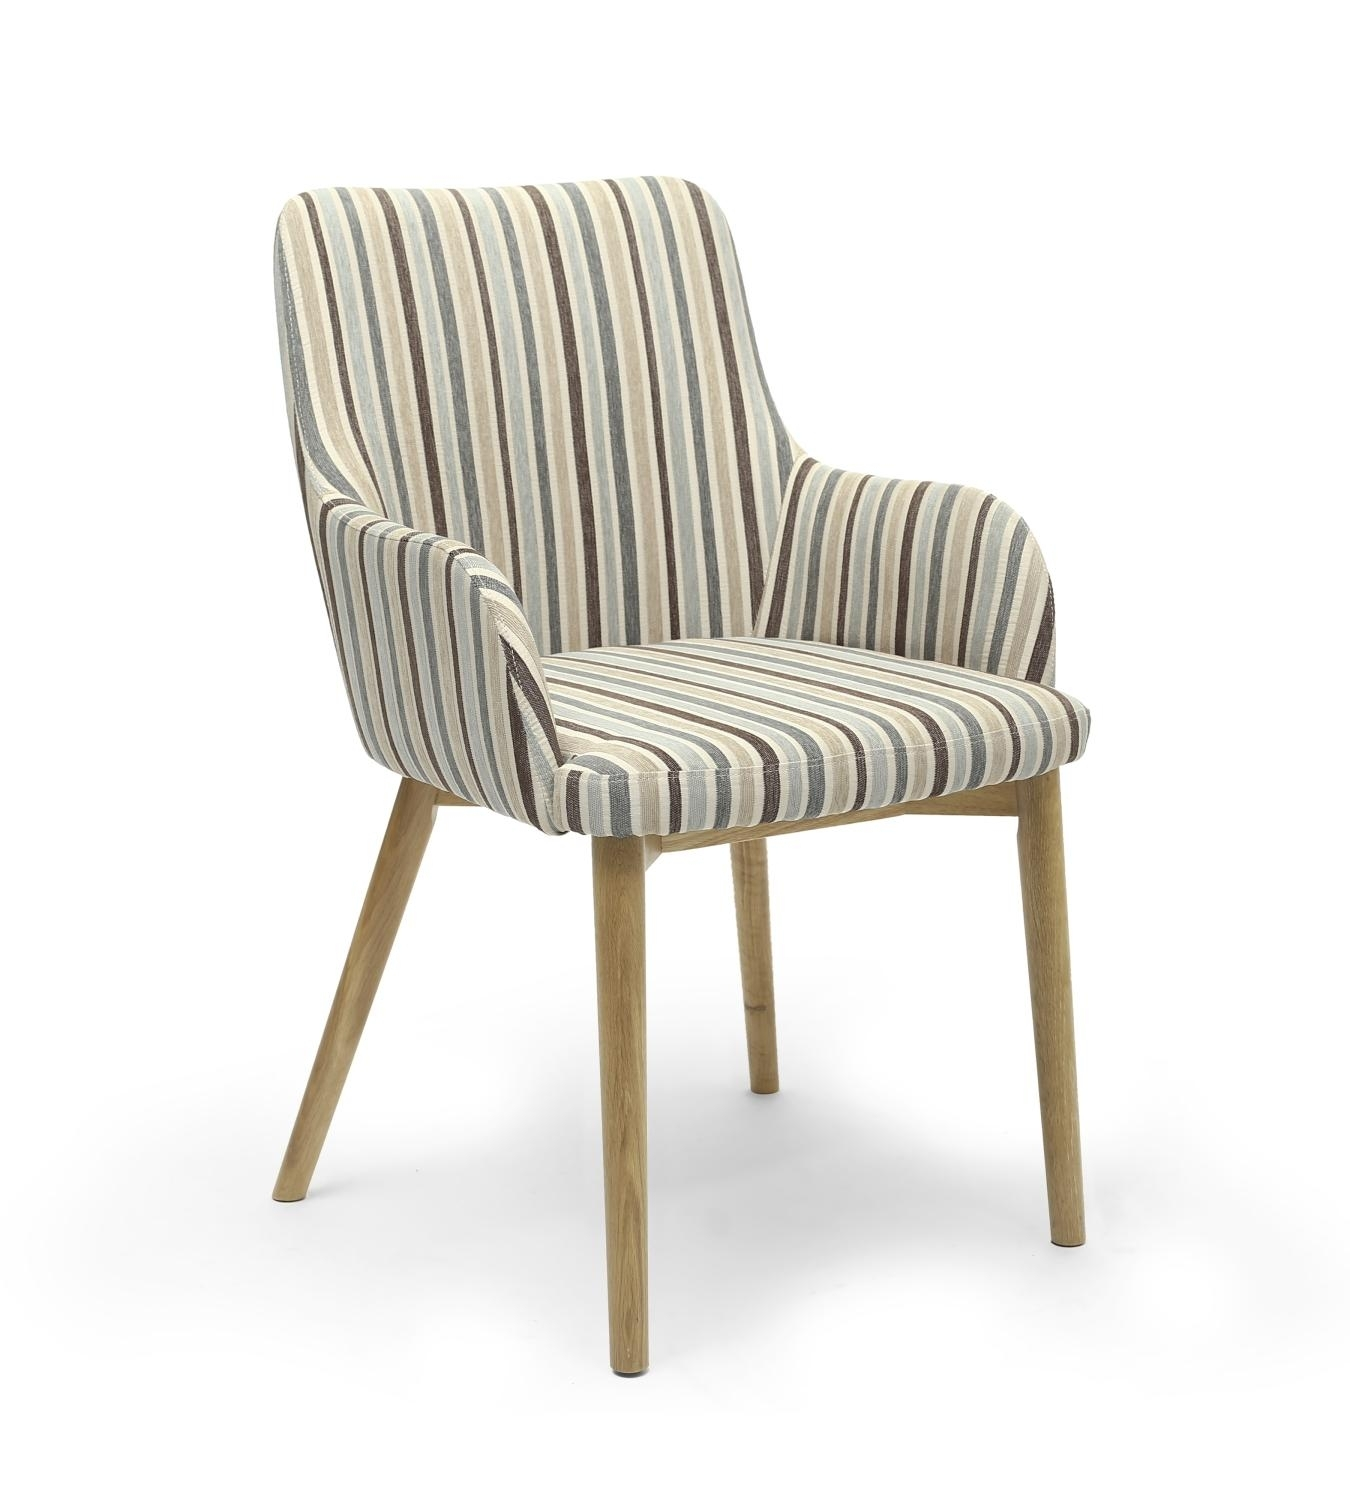 Favorite Blue Stripe Dining Chairs Pertaining To Sidcup Duck Egg Blue Stripe Dining Chair – L'amore Furnishings (View 3 of 20)